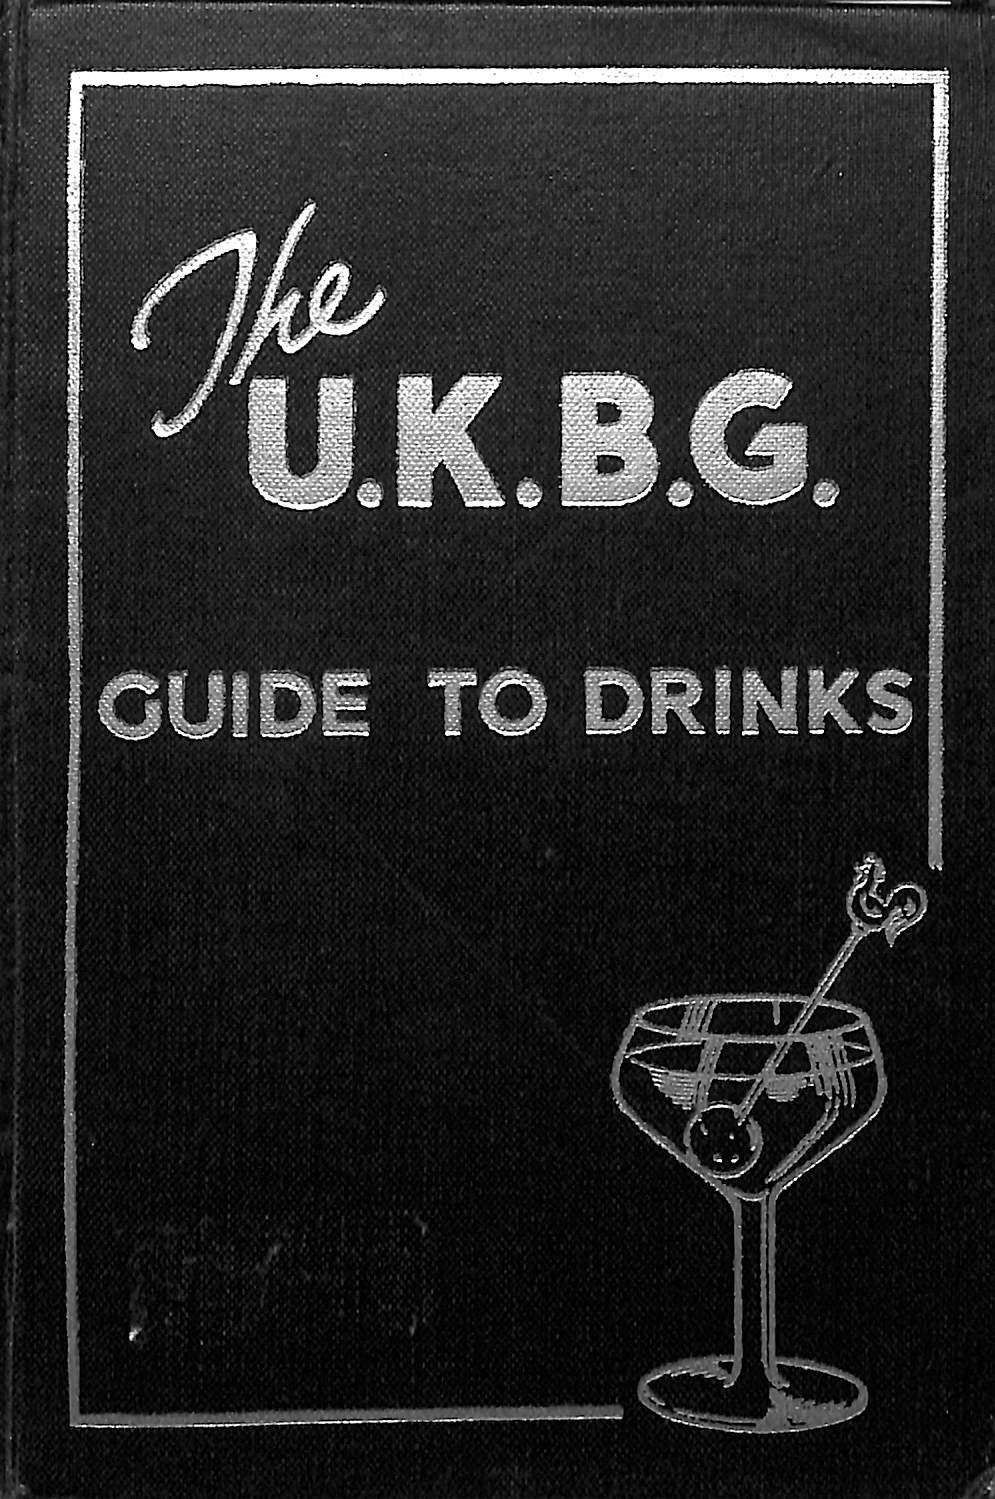 The U.K.B.G Guide to Drinks